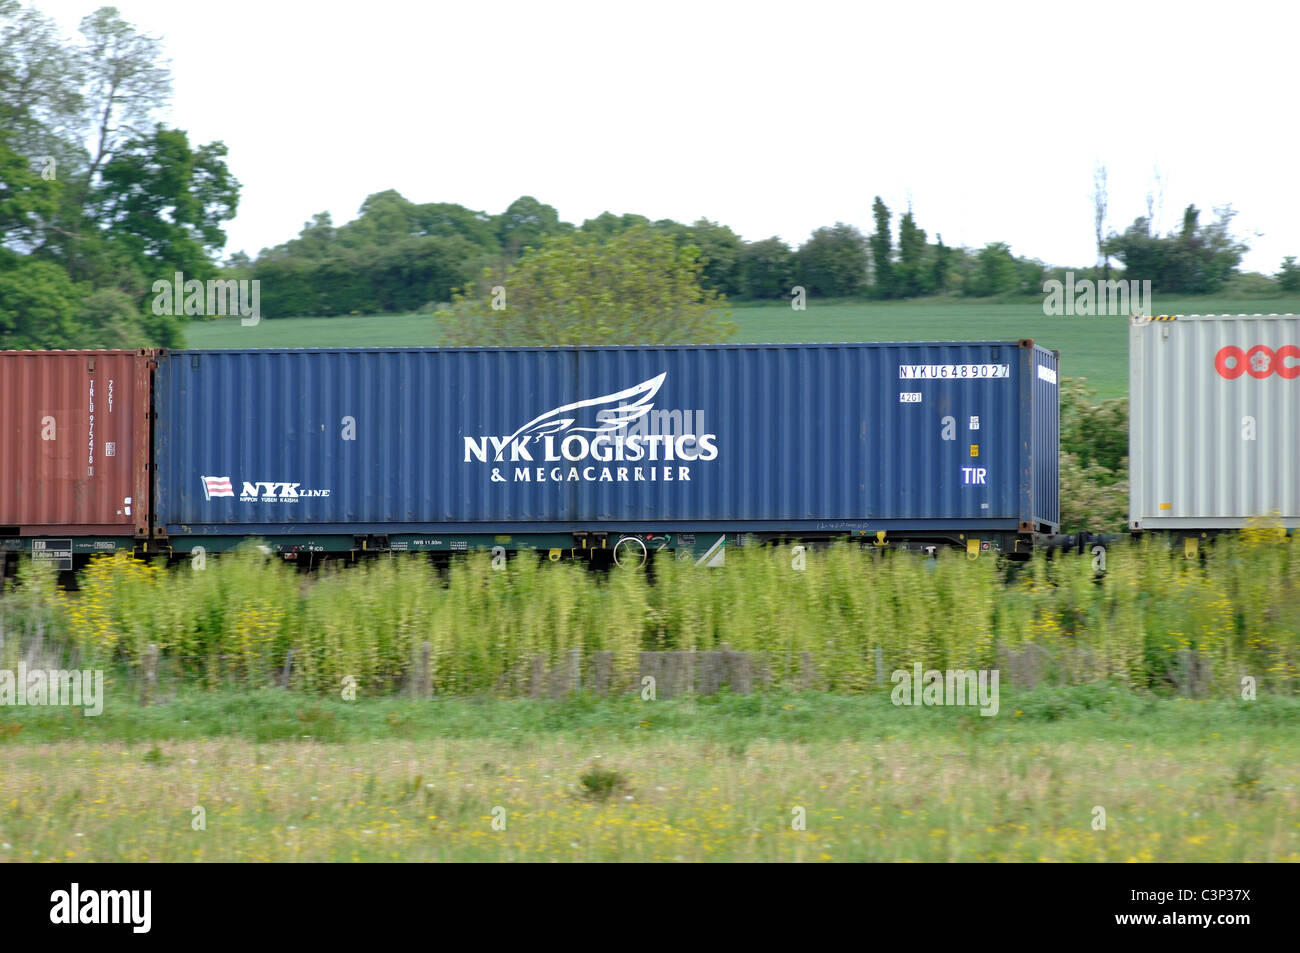 NYK Logistics shipping container transported on a train - Stock Image